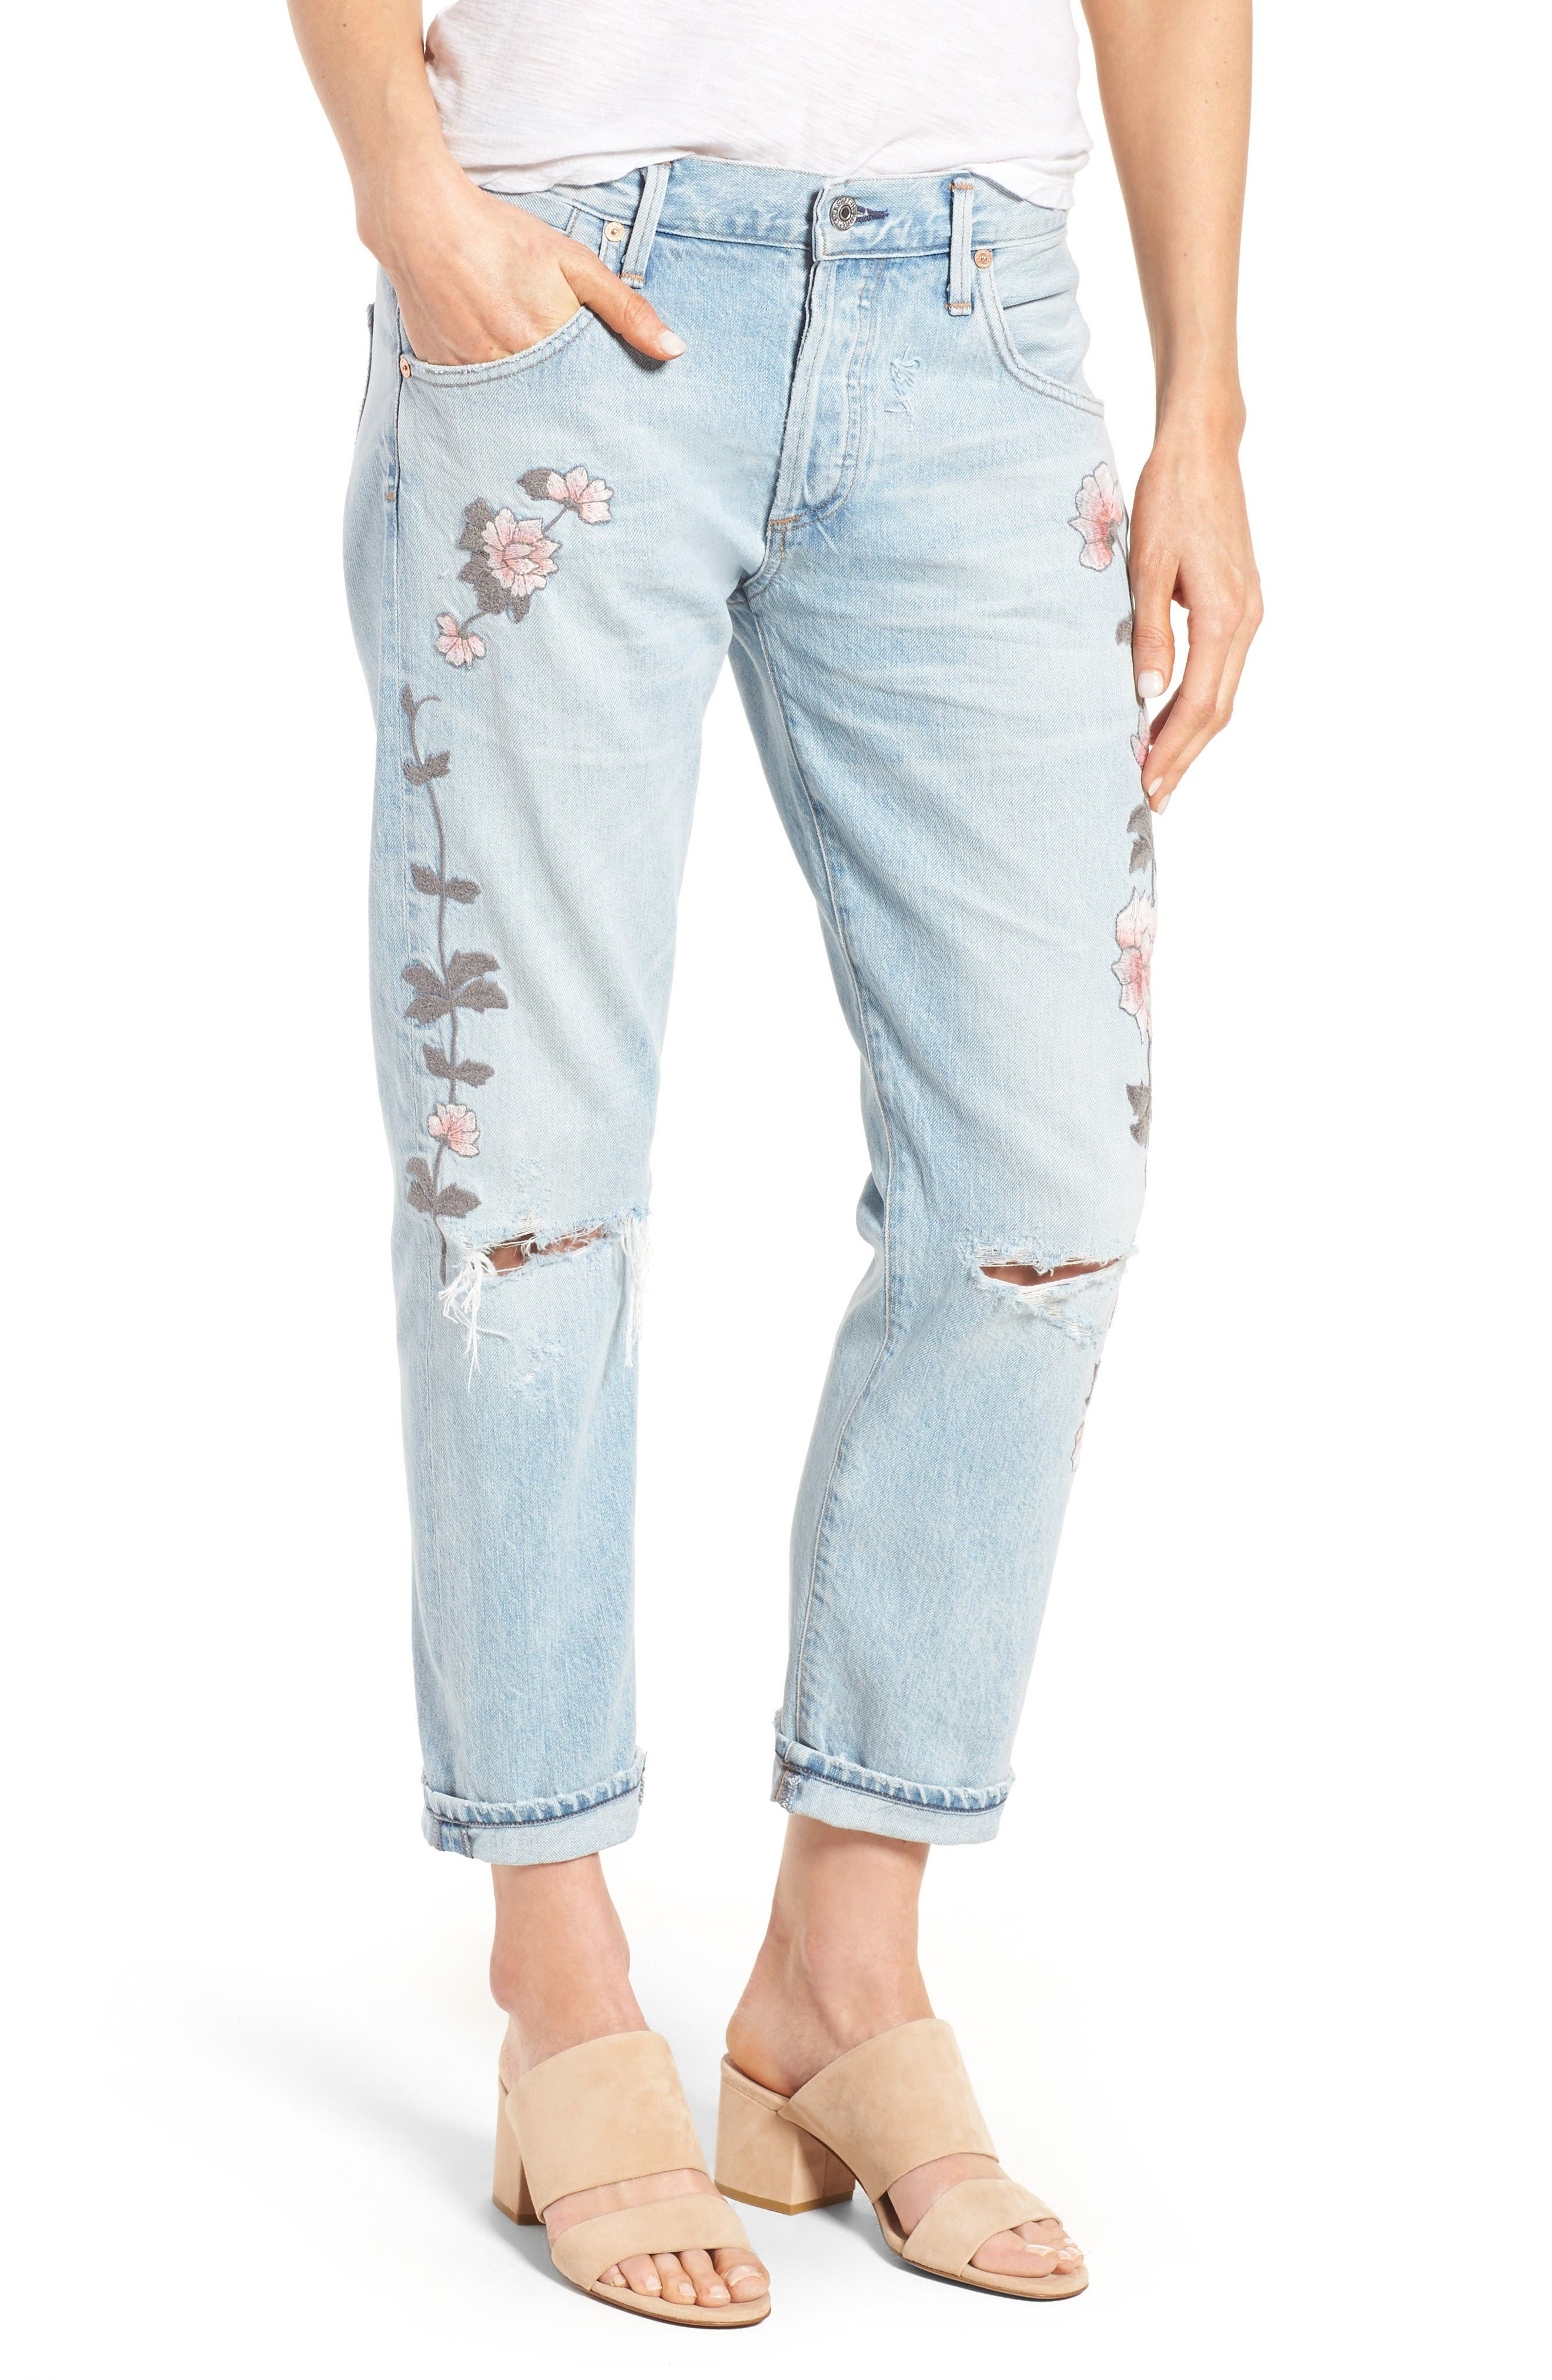 Main Image - Citizens of Humanity Emerson Slim Boyfriend Jeans (Distressed Rock on Roses)